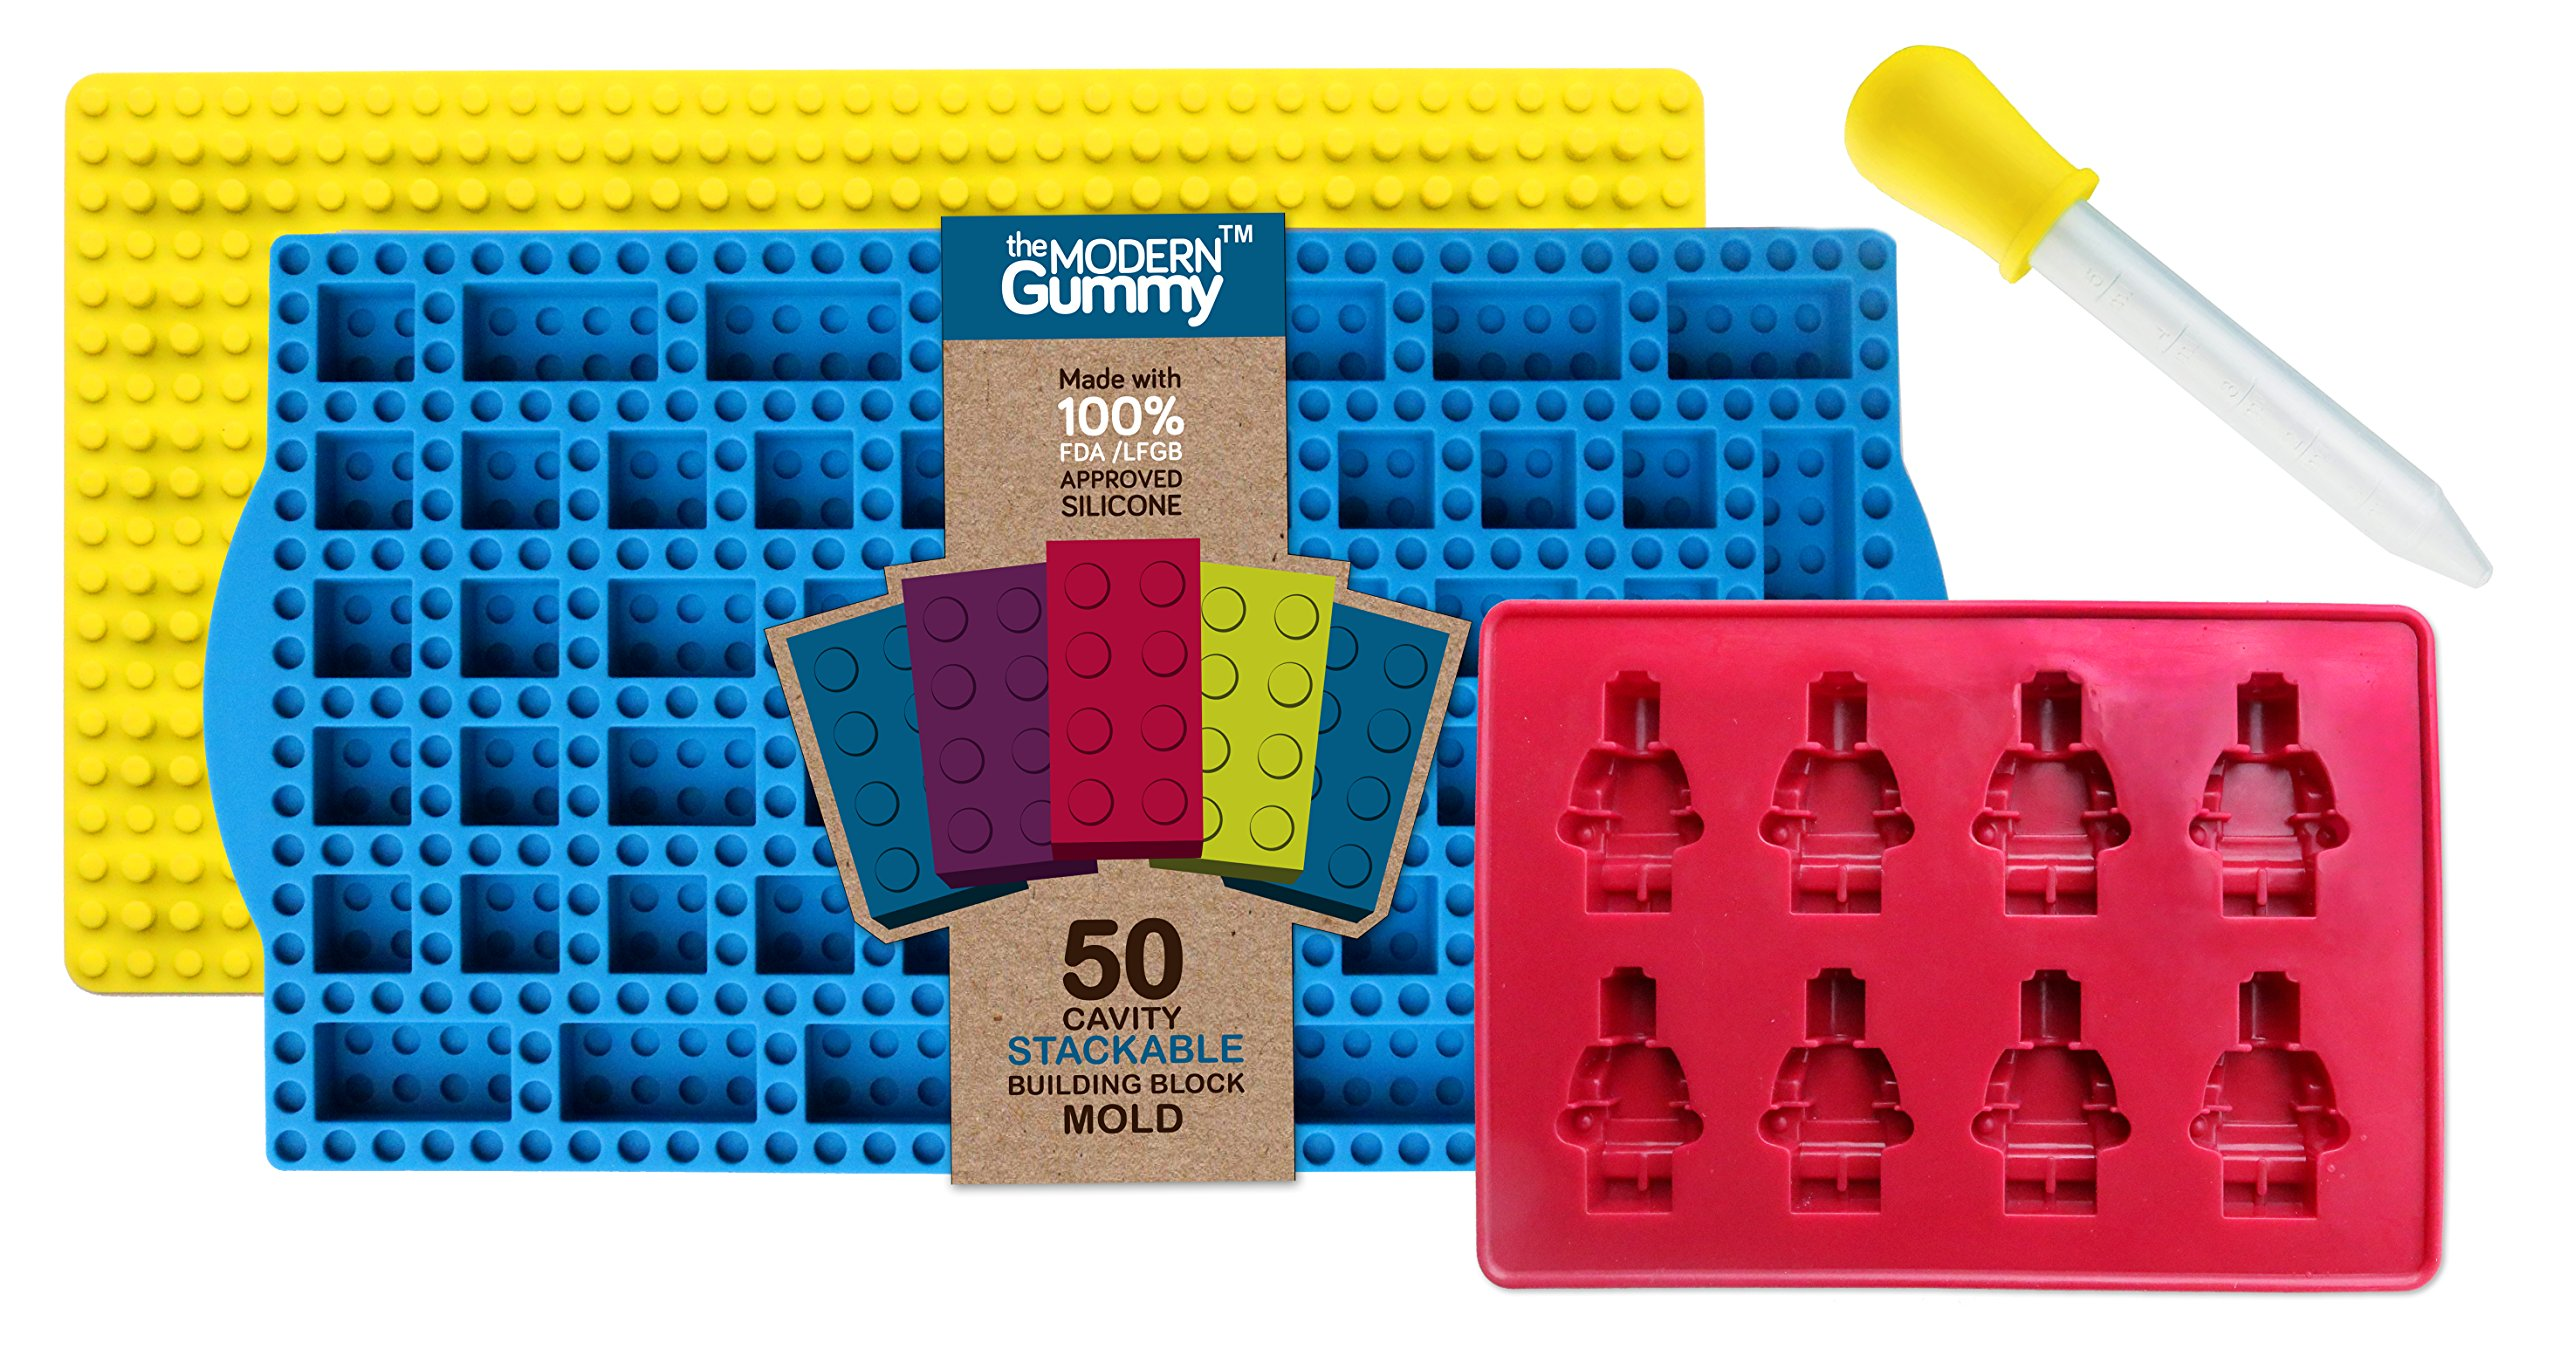 New STACKING 50 Cavity Building Block Candy Mold + Base Plate Style LID + Figure Mold + Dropper + Recipe PDF by the Modern Gummy | Patent Pending Molds Made with PURE LFGB Silicone for fans of LEGO